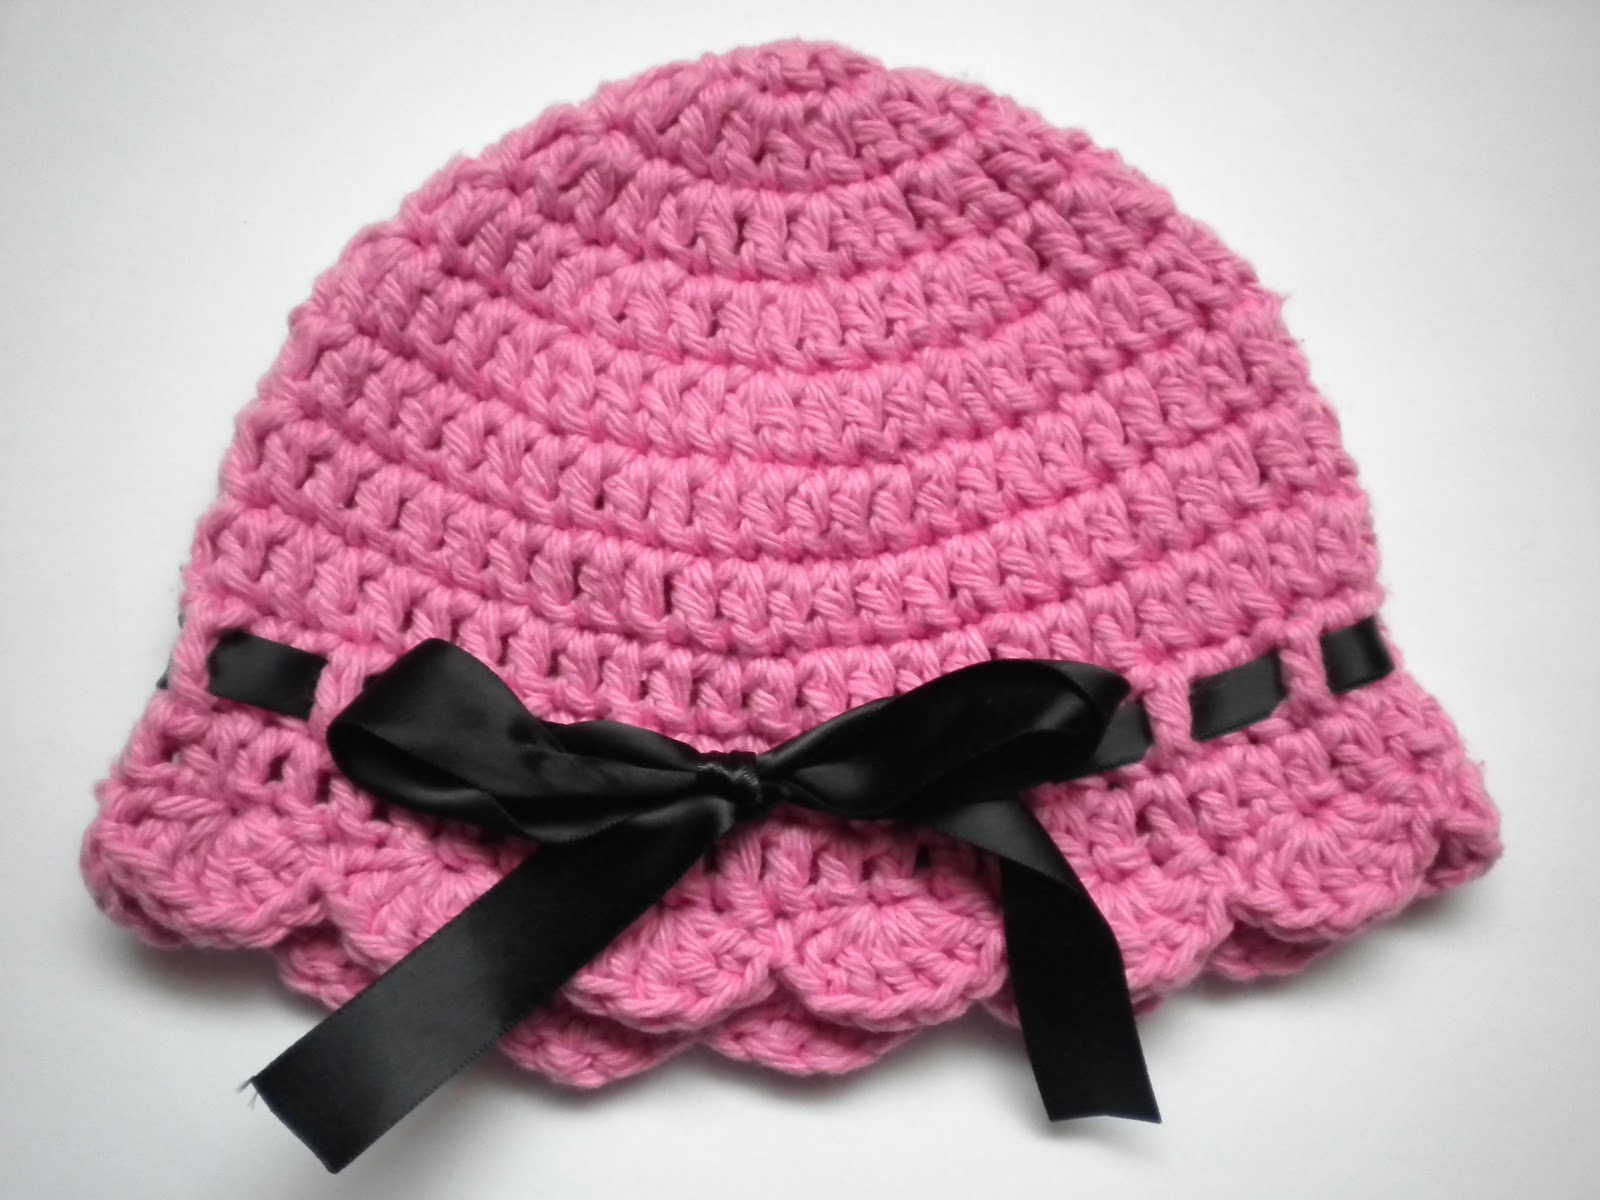 Crochet Patterns For Baby Girl : AnnaVirginia Fashion: Baby Flapper-Girl Hat *Pattern*